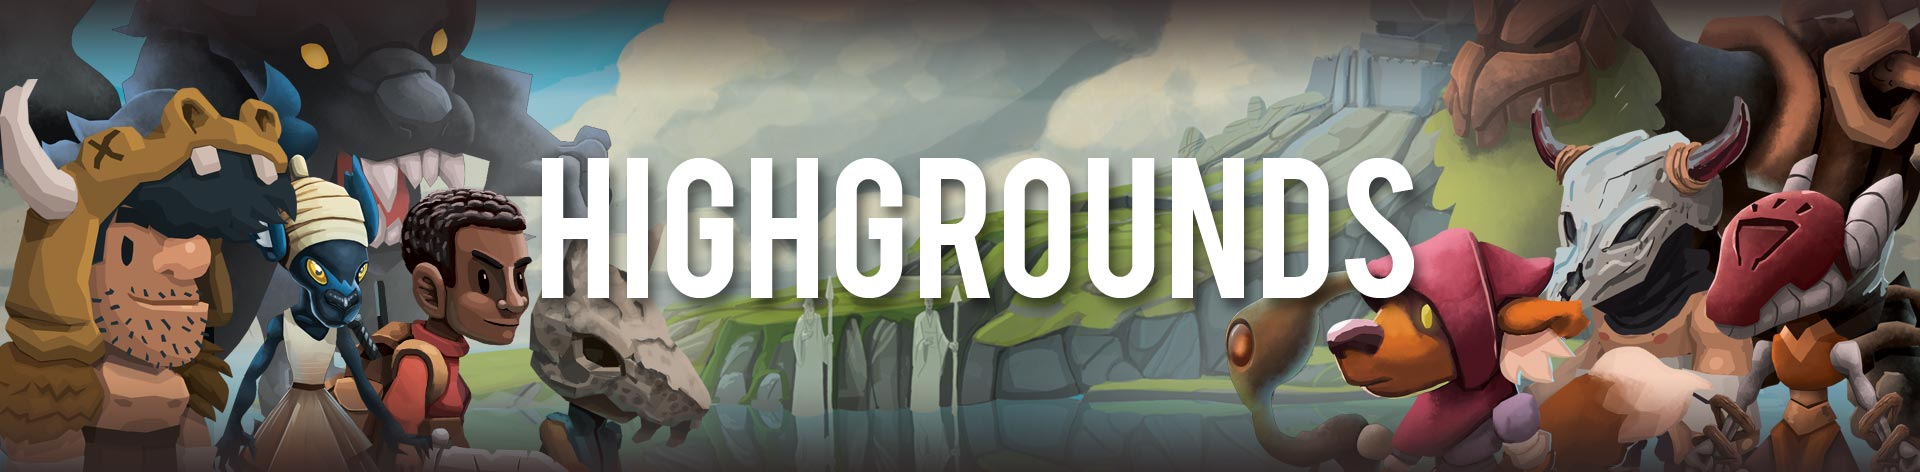 Highgrounds Game Banner Image